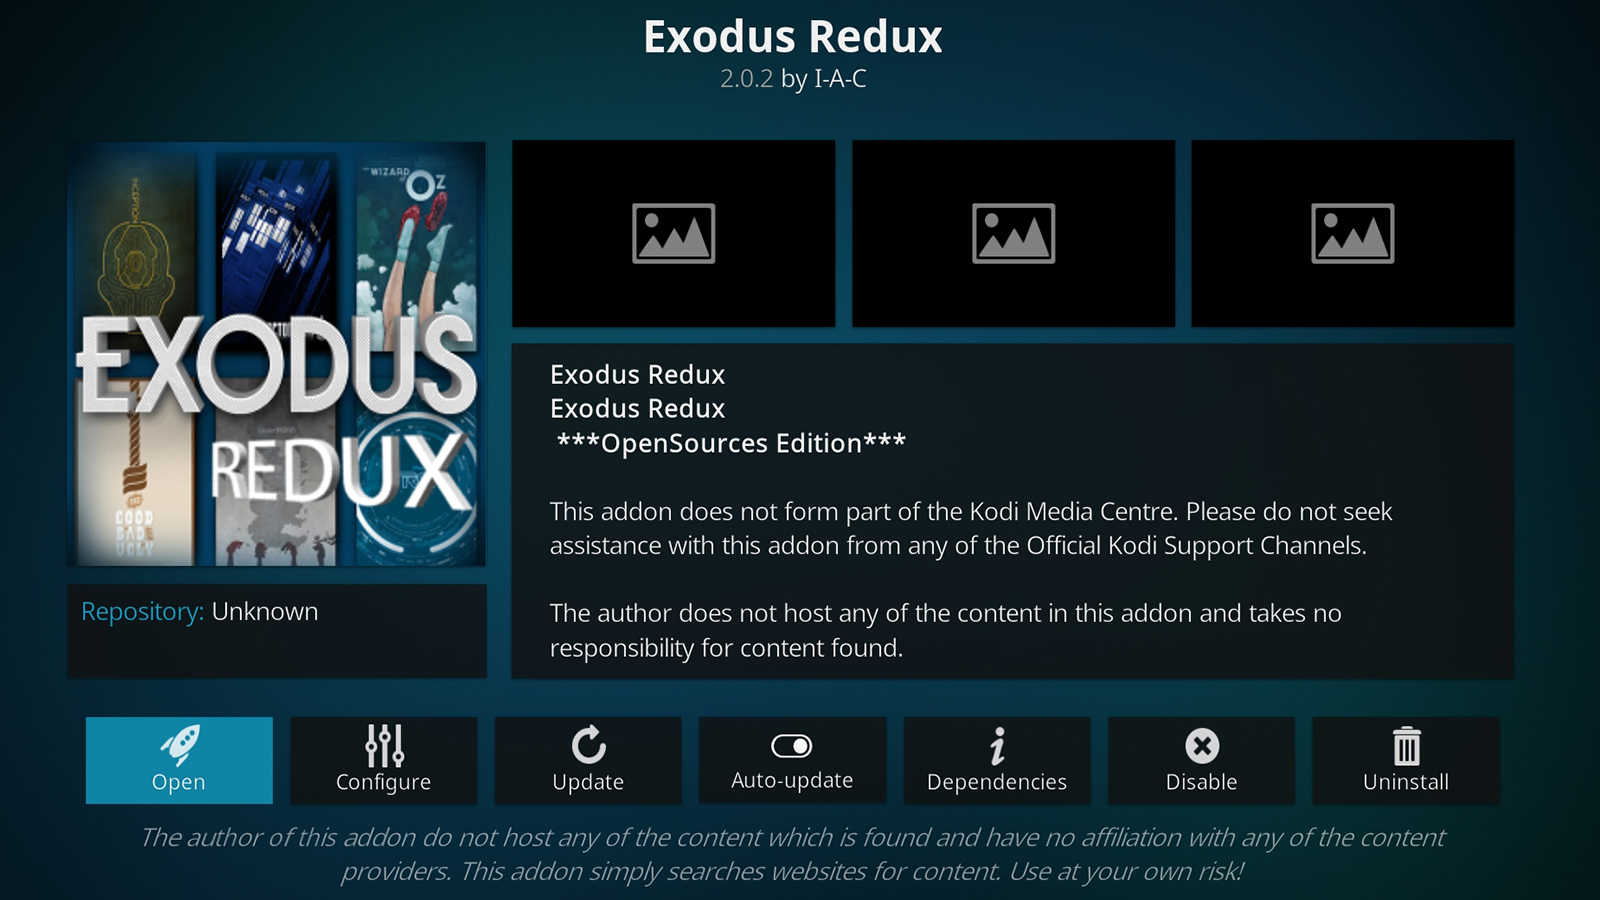 9 Steps to Install Exodus Redux on Kodi in 2019 - TechNadu